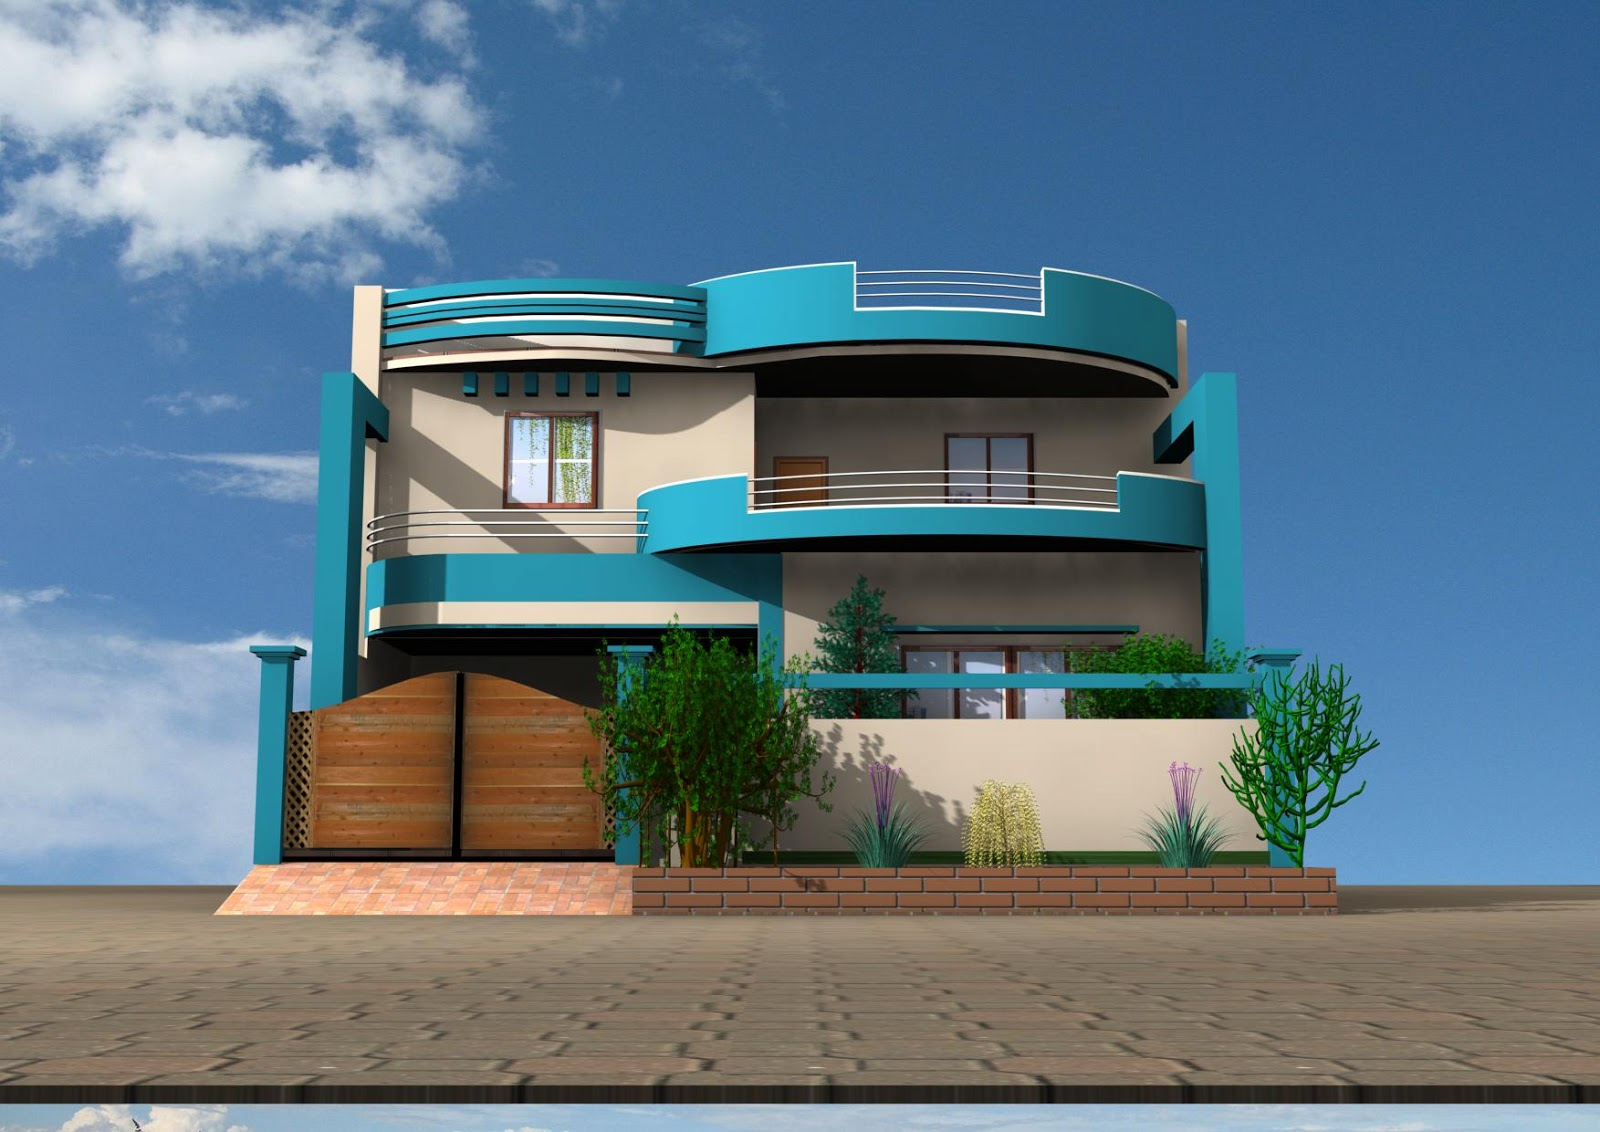 New home designs latest.: Modern homes latest exterior ...